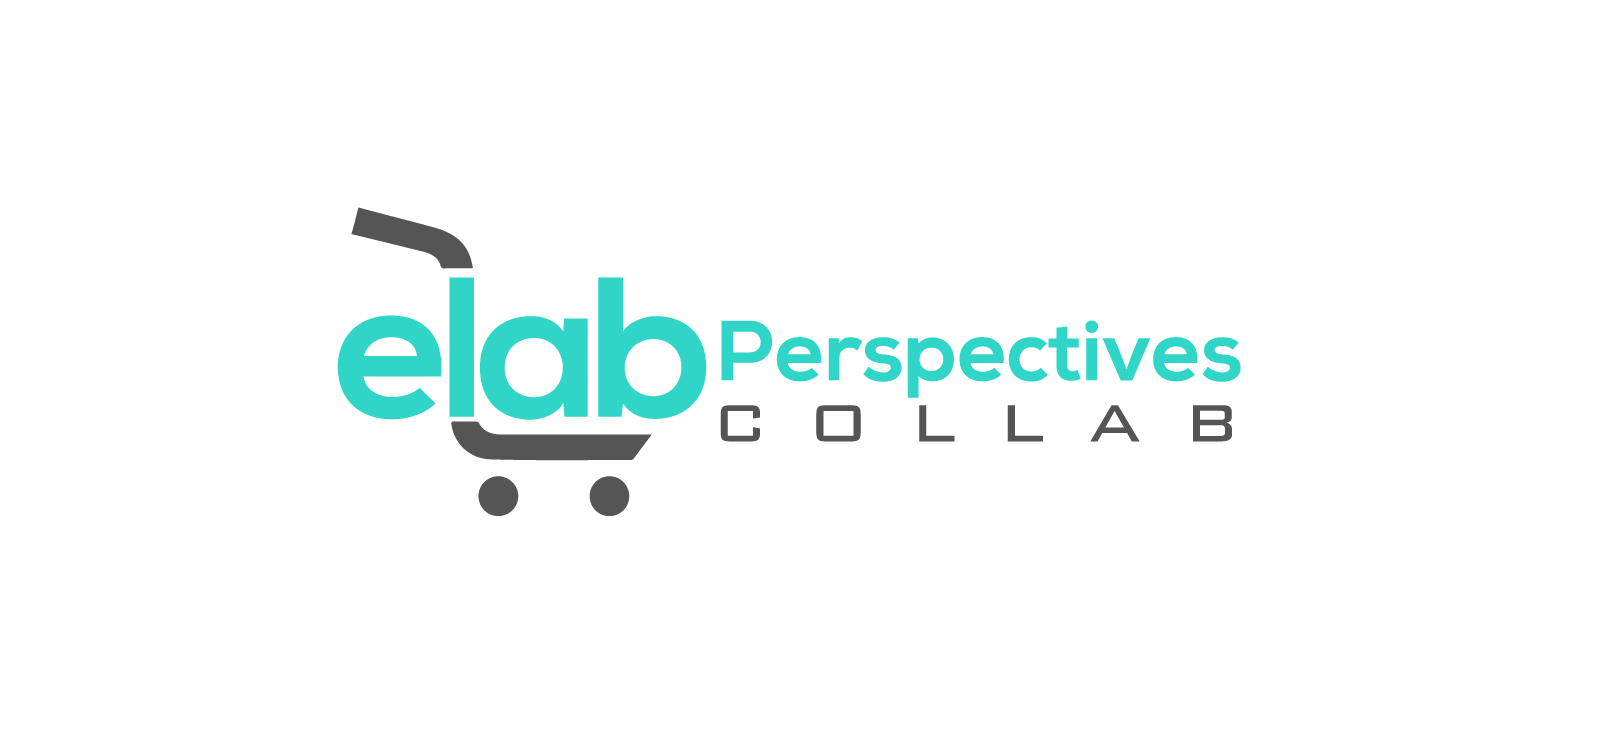 Elab Perspectives Collab